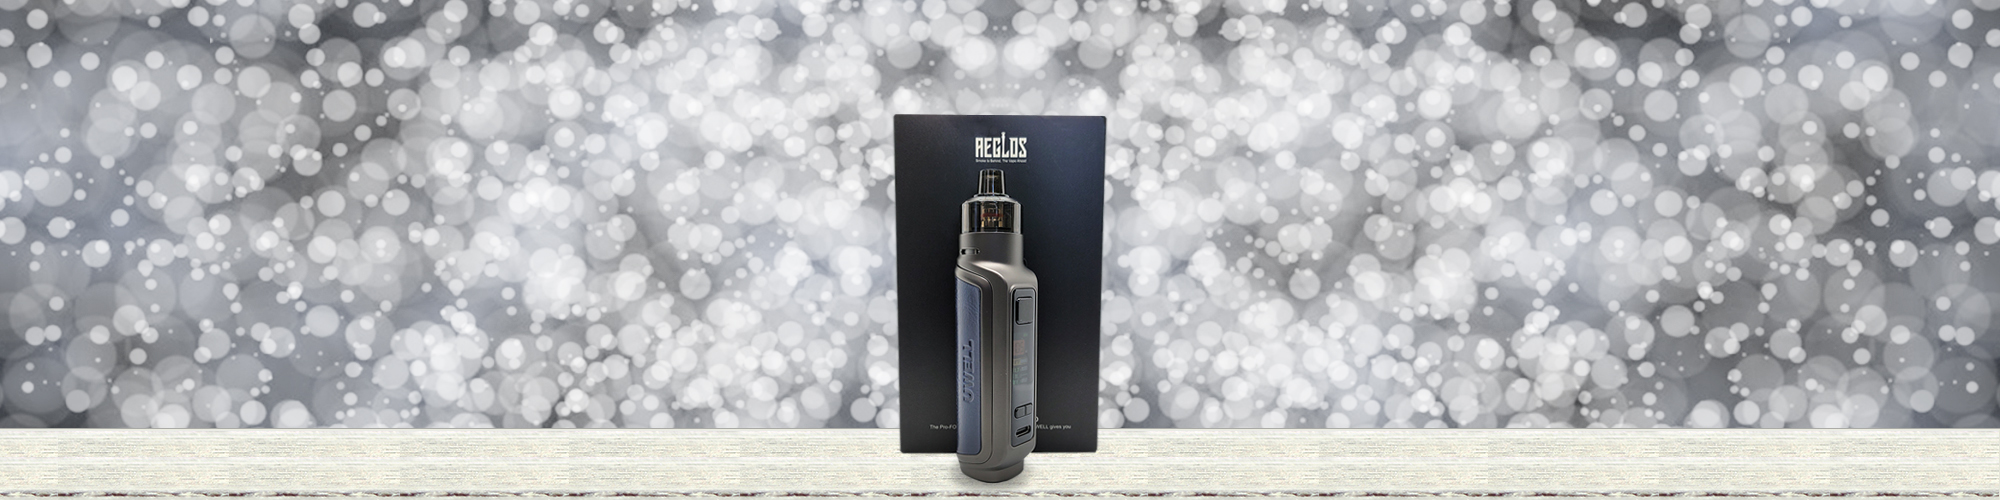 Uwell Aeglos P1 Review Main Banner